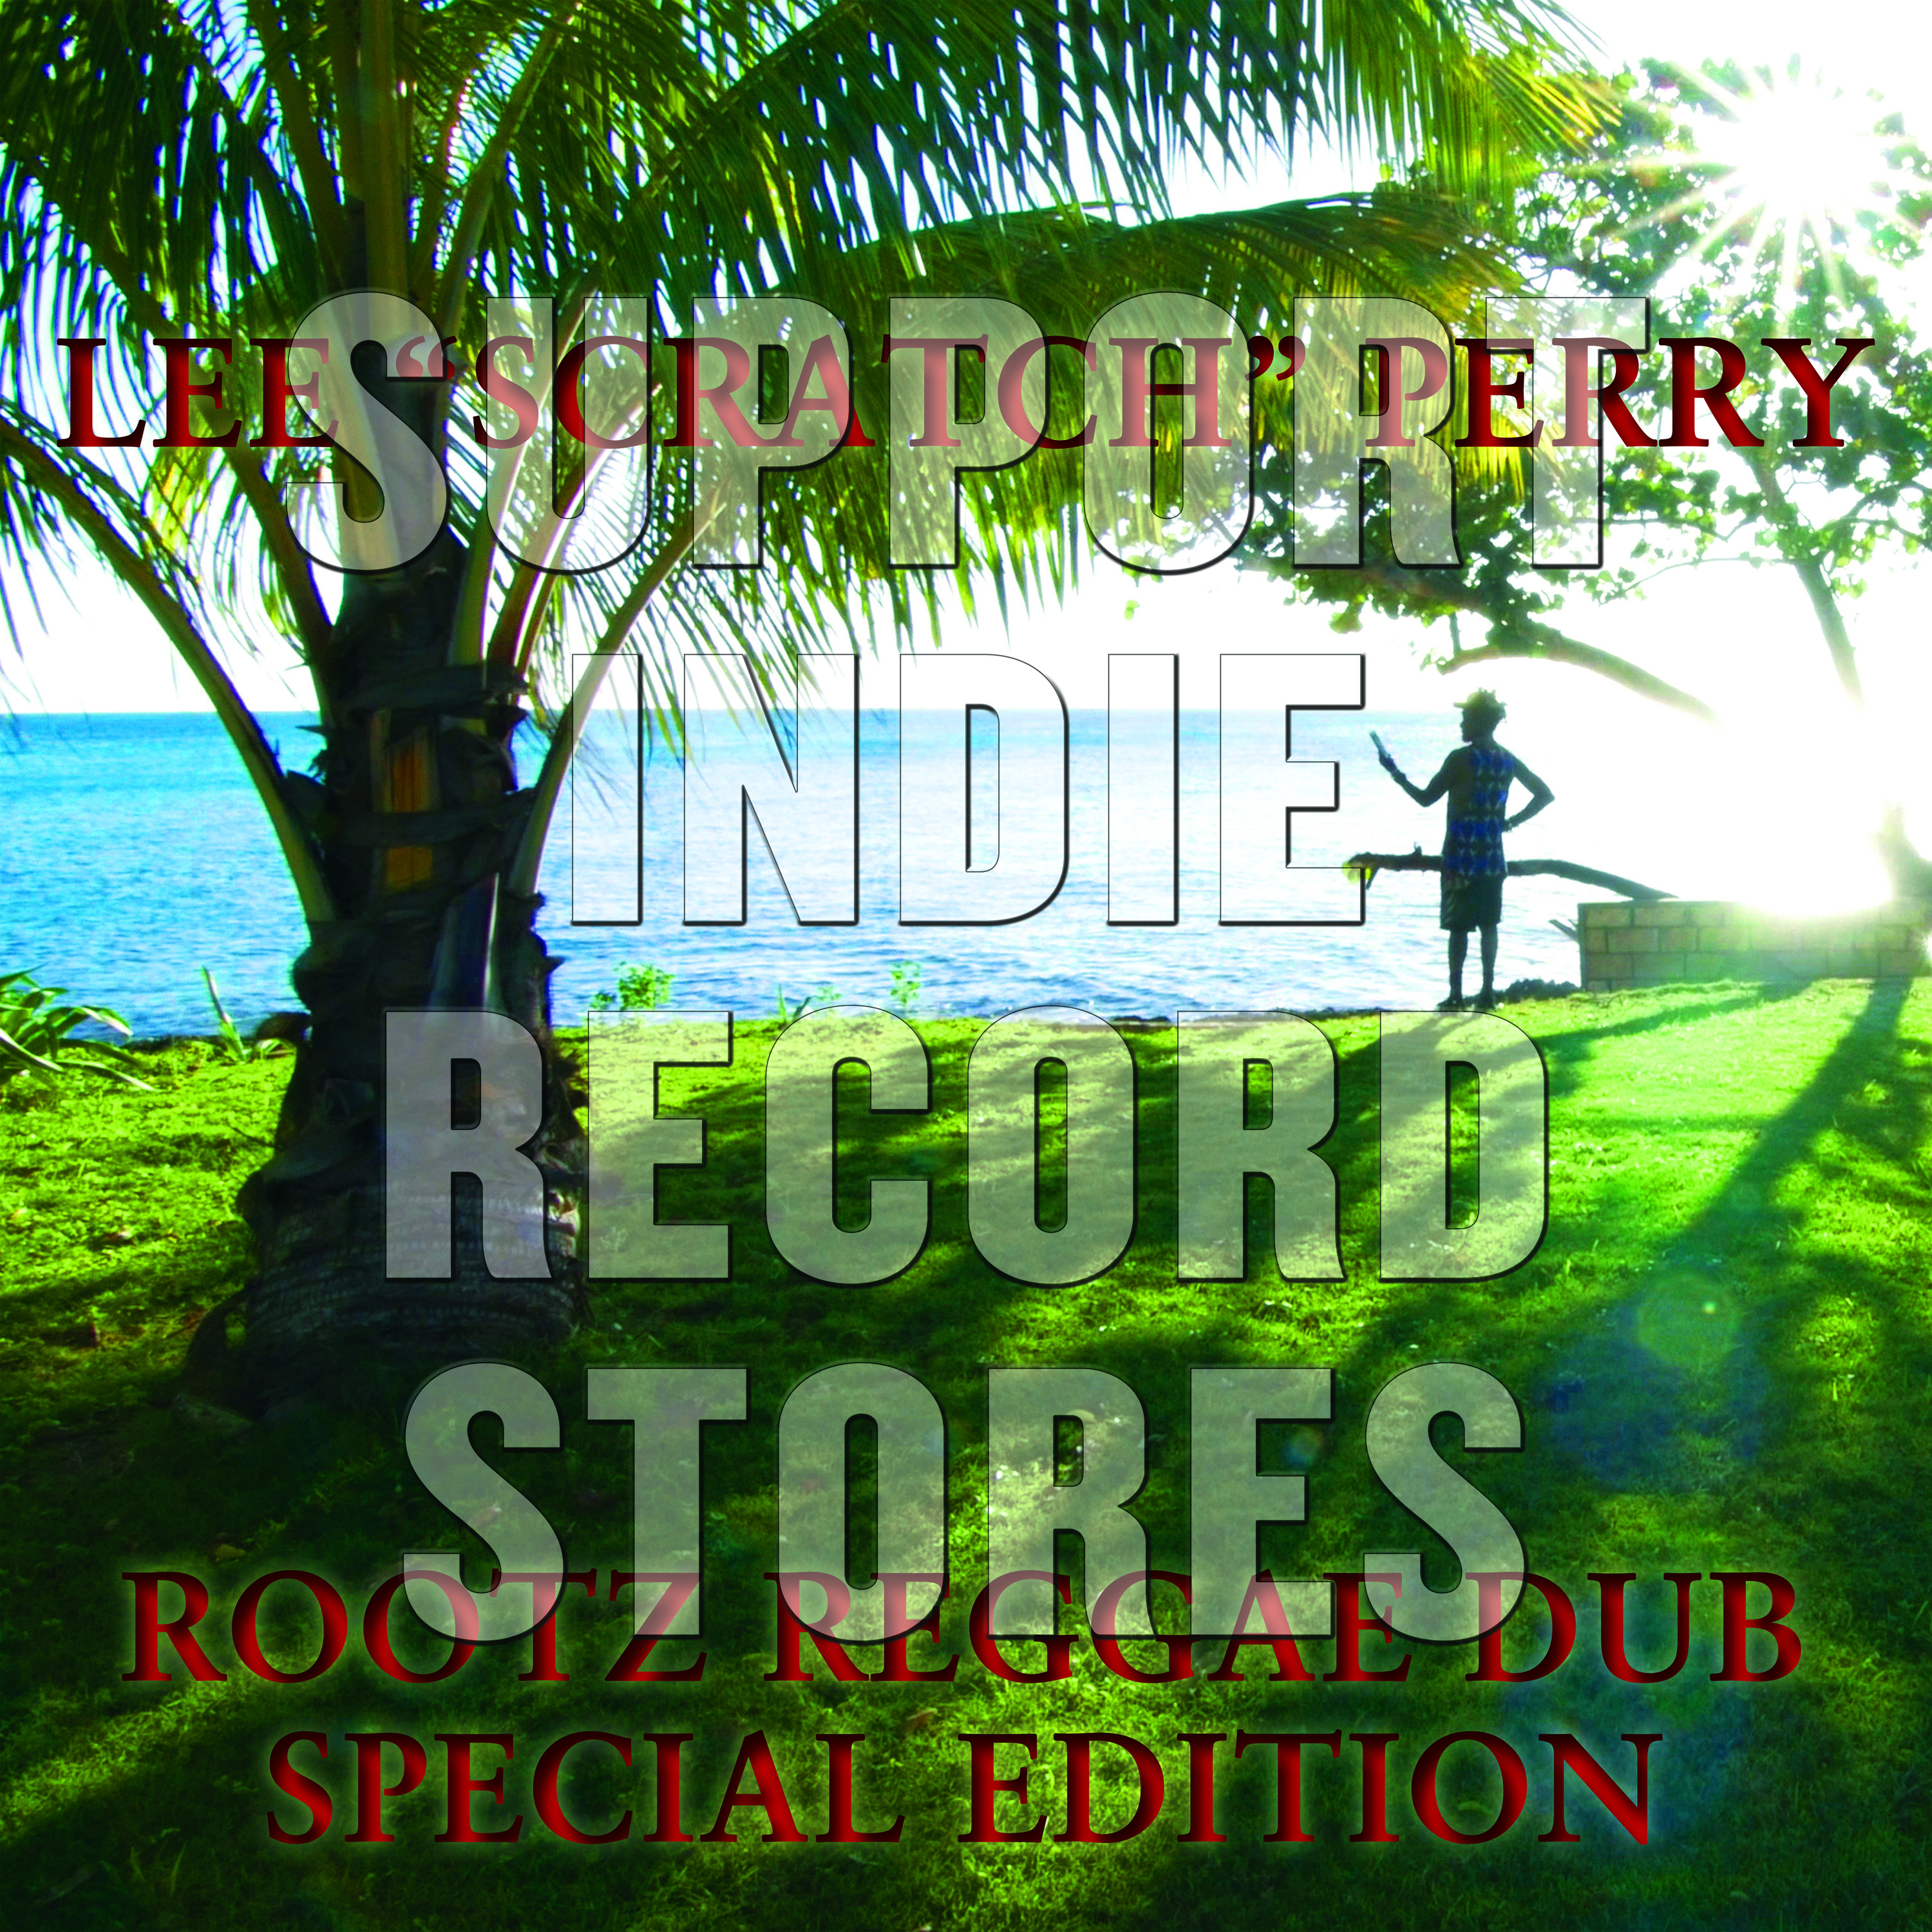 Lee 'scratch' Perry - Rootz Reggae Dub -- Special Edition  [RSD 2019]